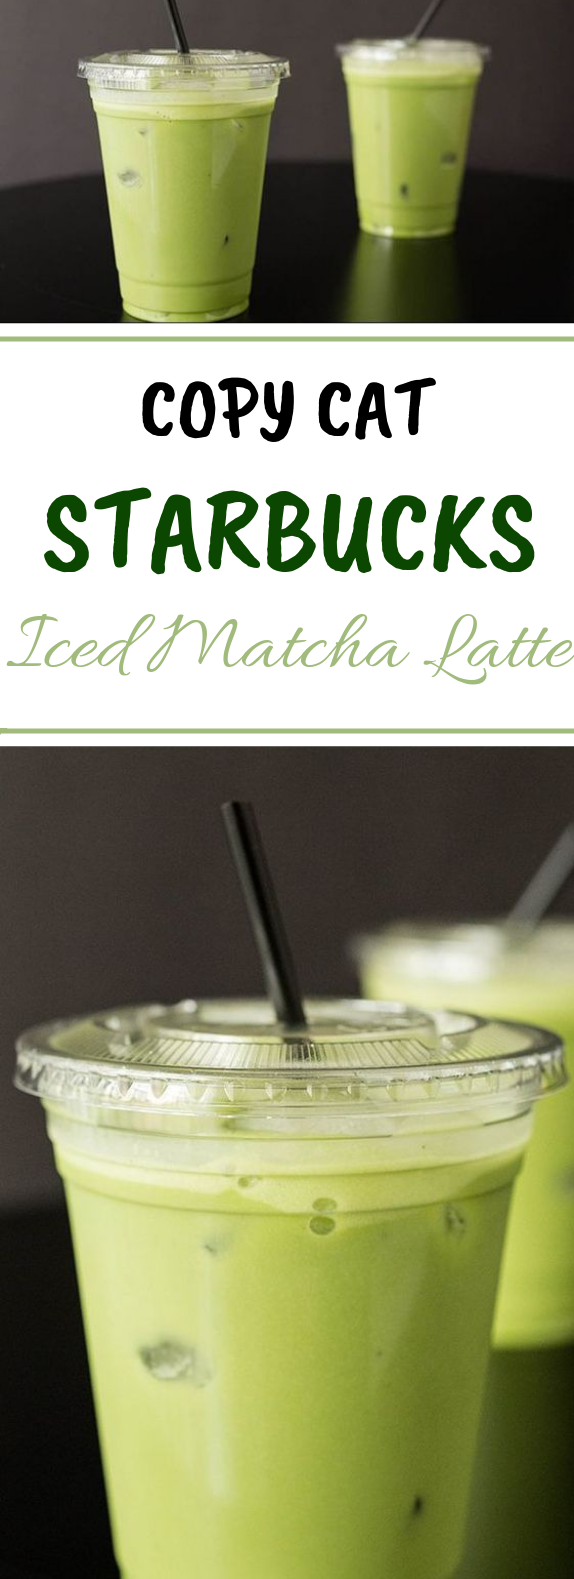 Copycat Starbucks Iced Matcha Latte #matcha #drinks